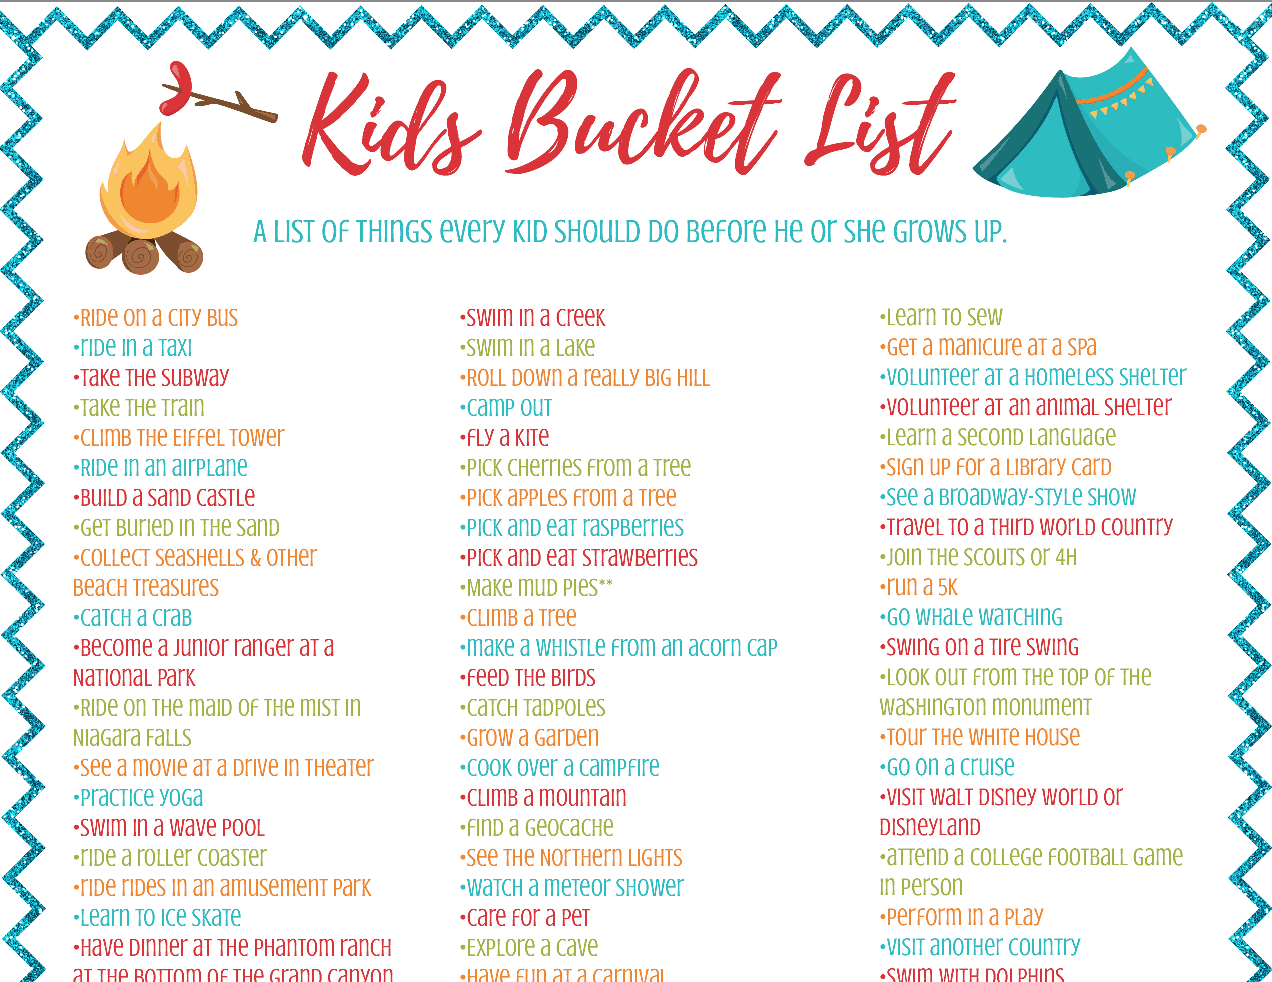 Kids Bucket List - 82 Things To Do Before They Grow Up - Feels Like ...